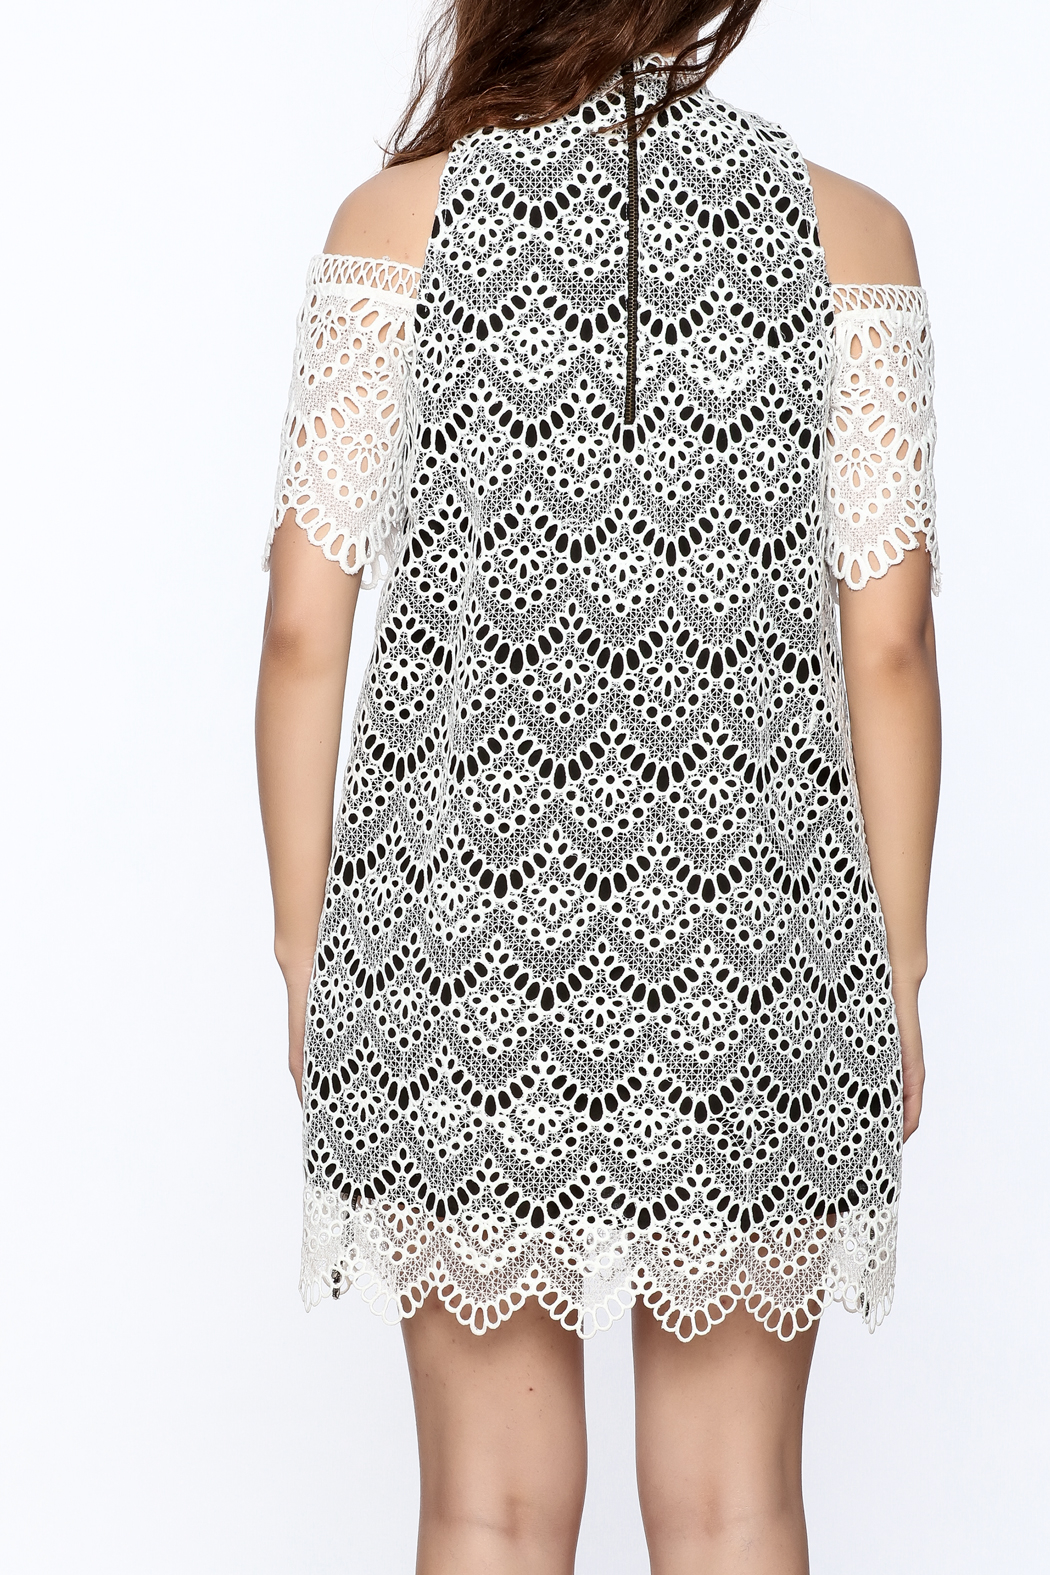 KAS New York Semi Lined Lace Dress - Back Cropped Image